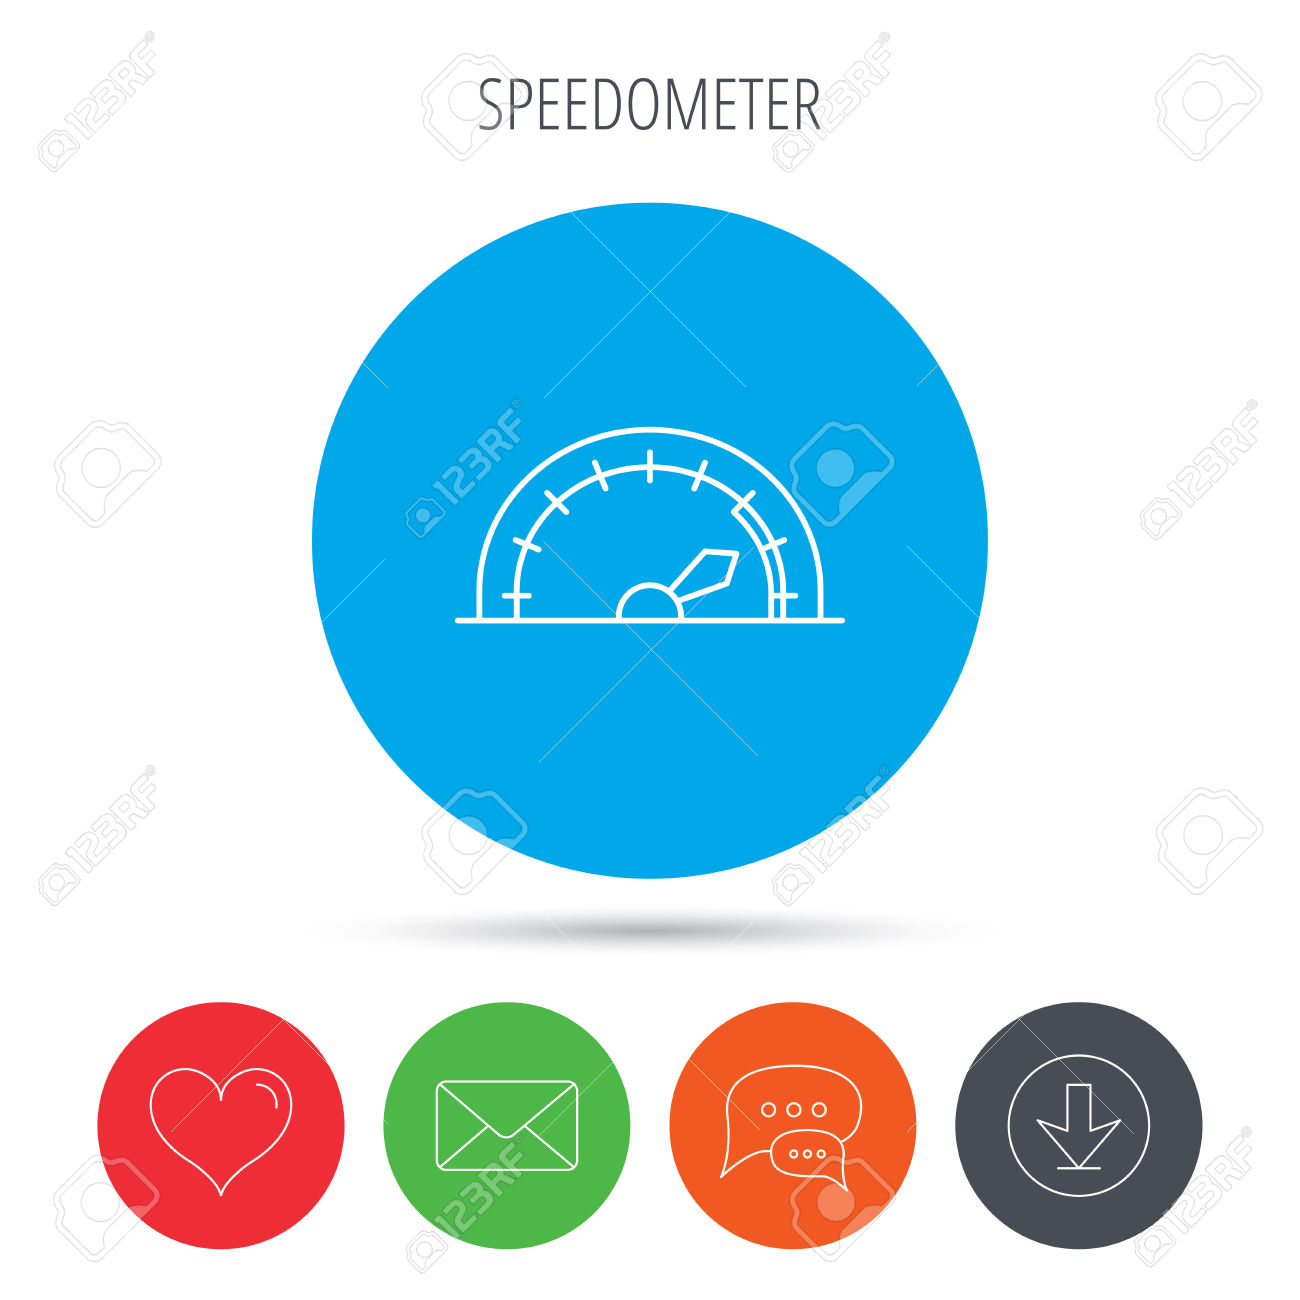 Clipart speed arrow picture library stock Speedometer Icon. Speed Tachometer With Arrow Sign. Mail, Download ... picture library stock